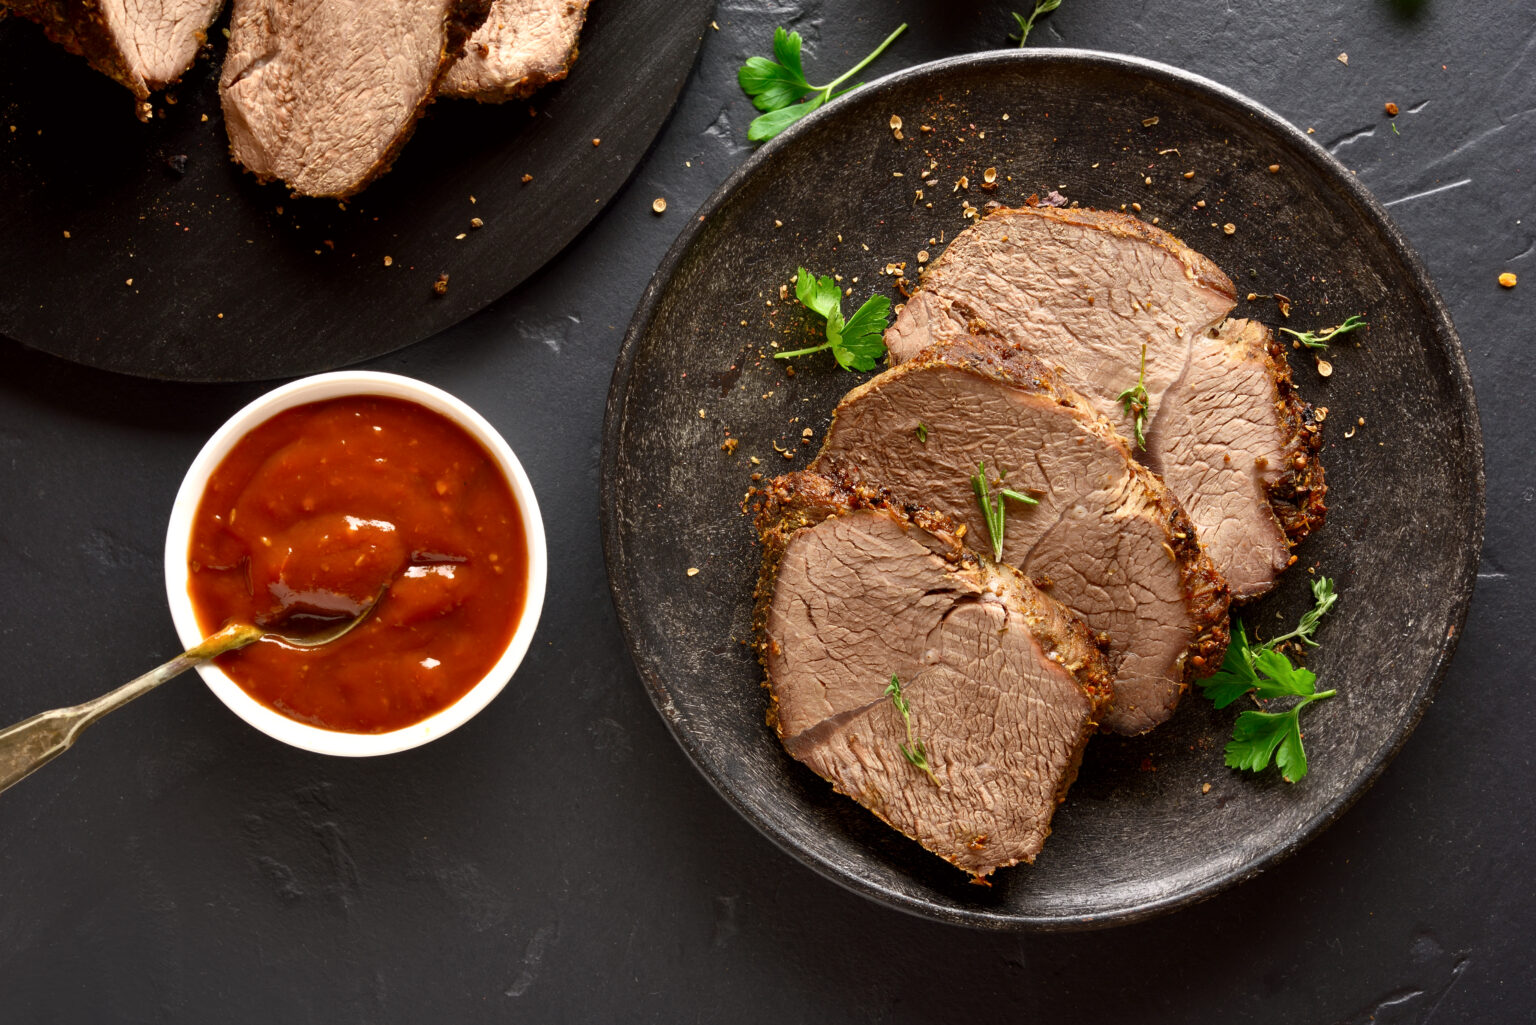 Roasted beef on plate over dark stone background. Tasty cooked beef with sauce. Top view, flat lay